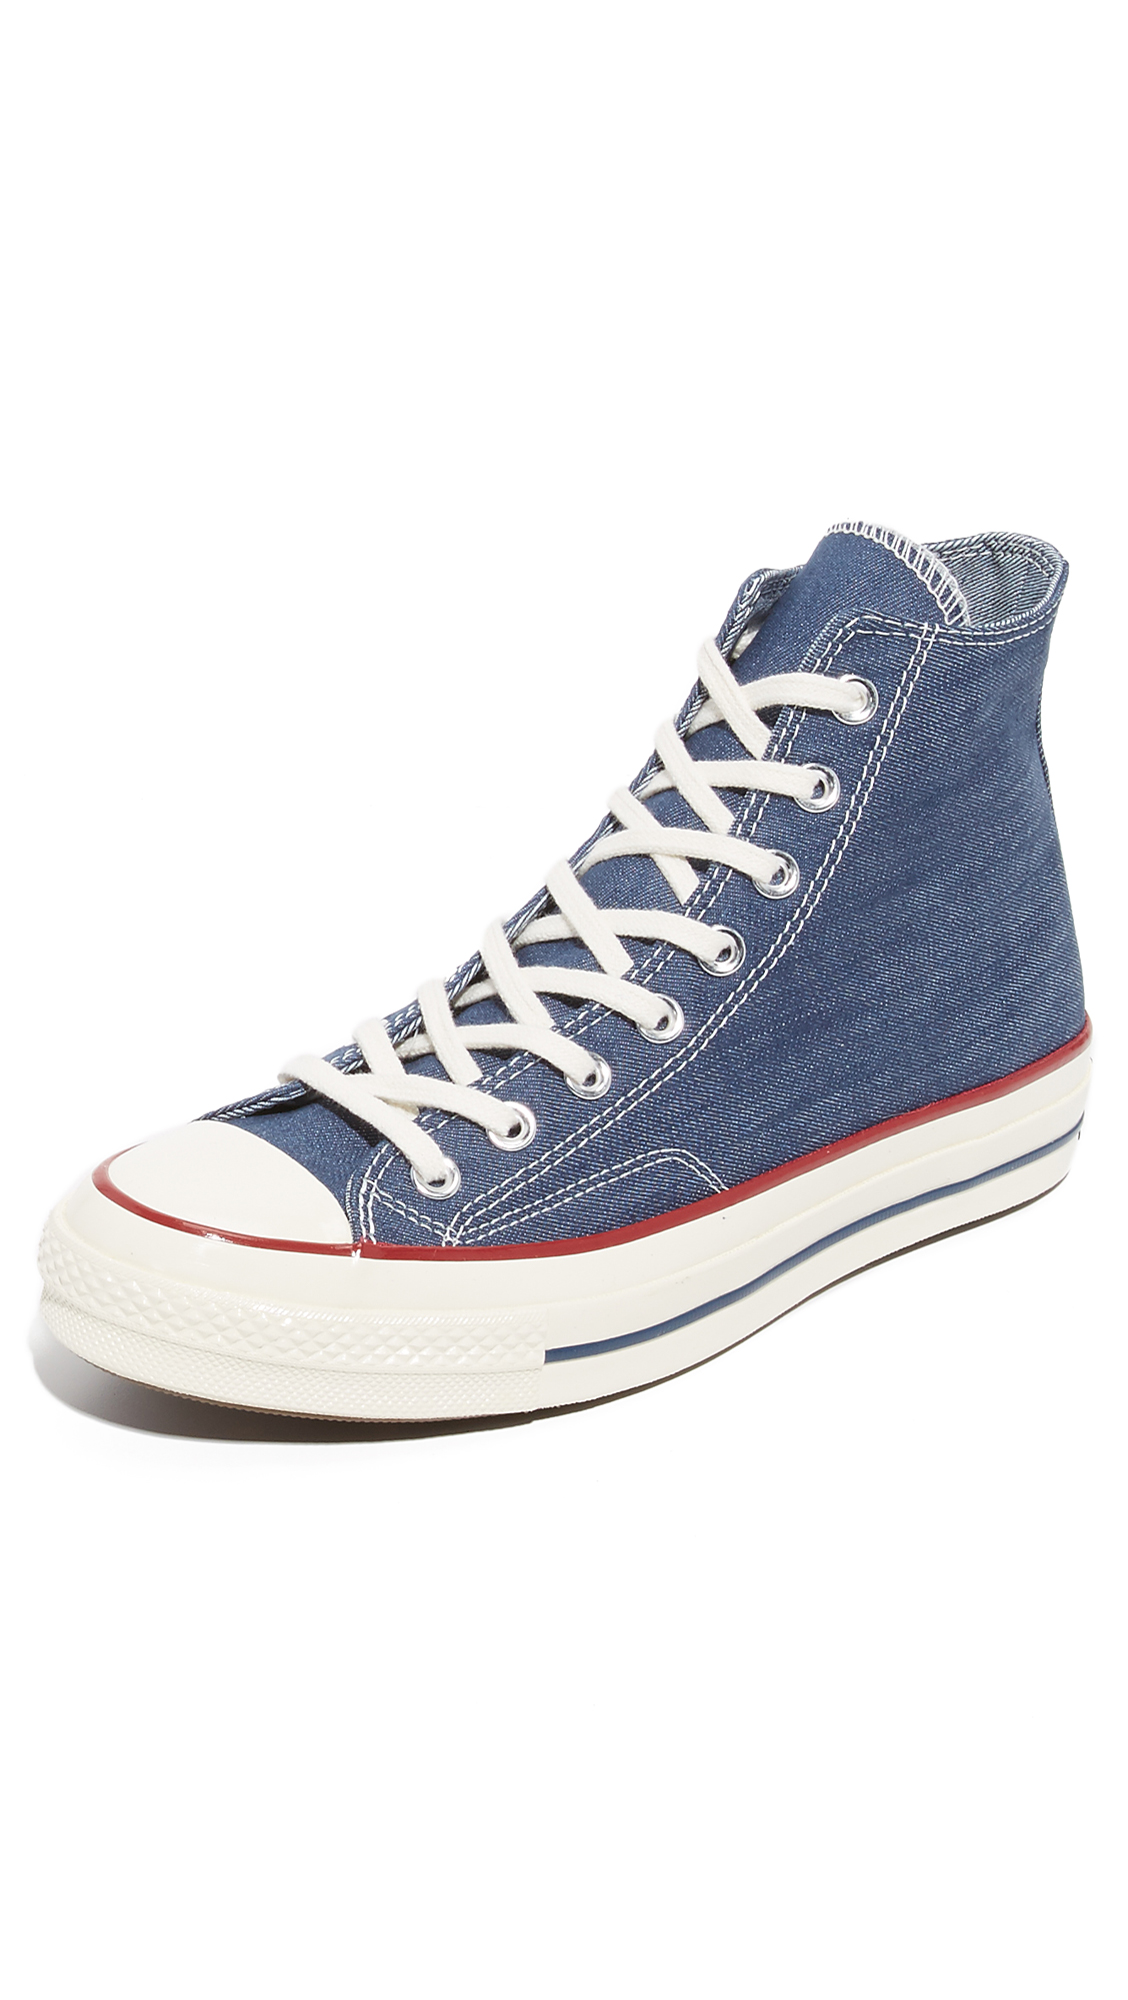 43cd0c494b24 Converse Chuck Taylor All Star 70s High Top Sneakers